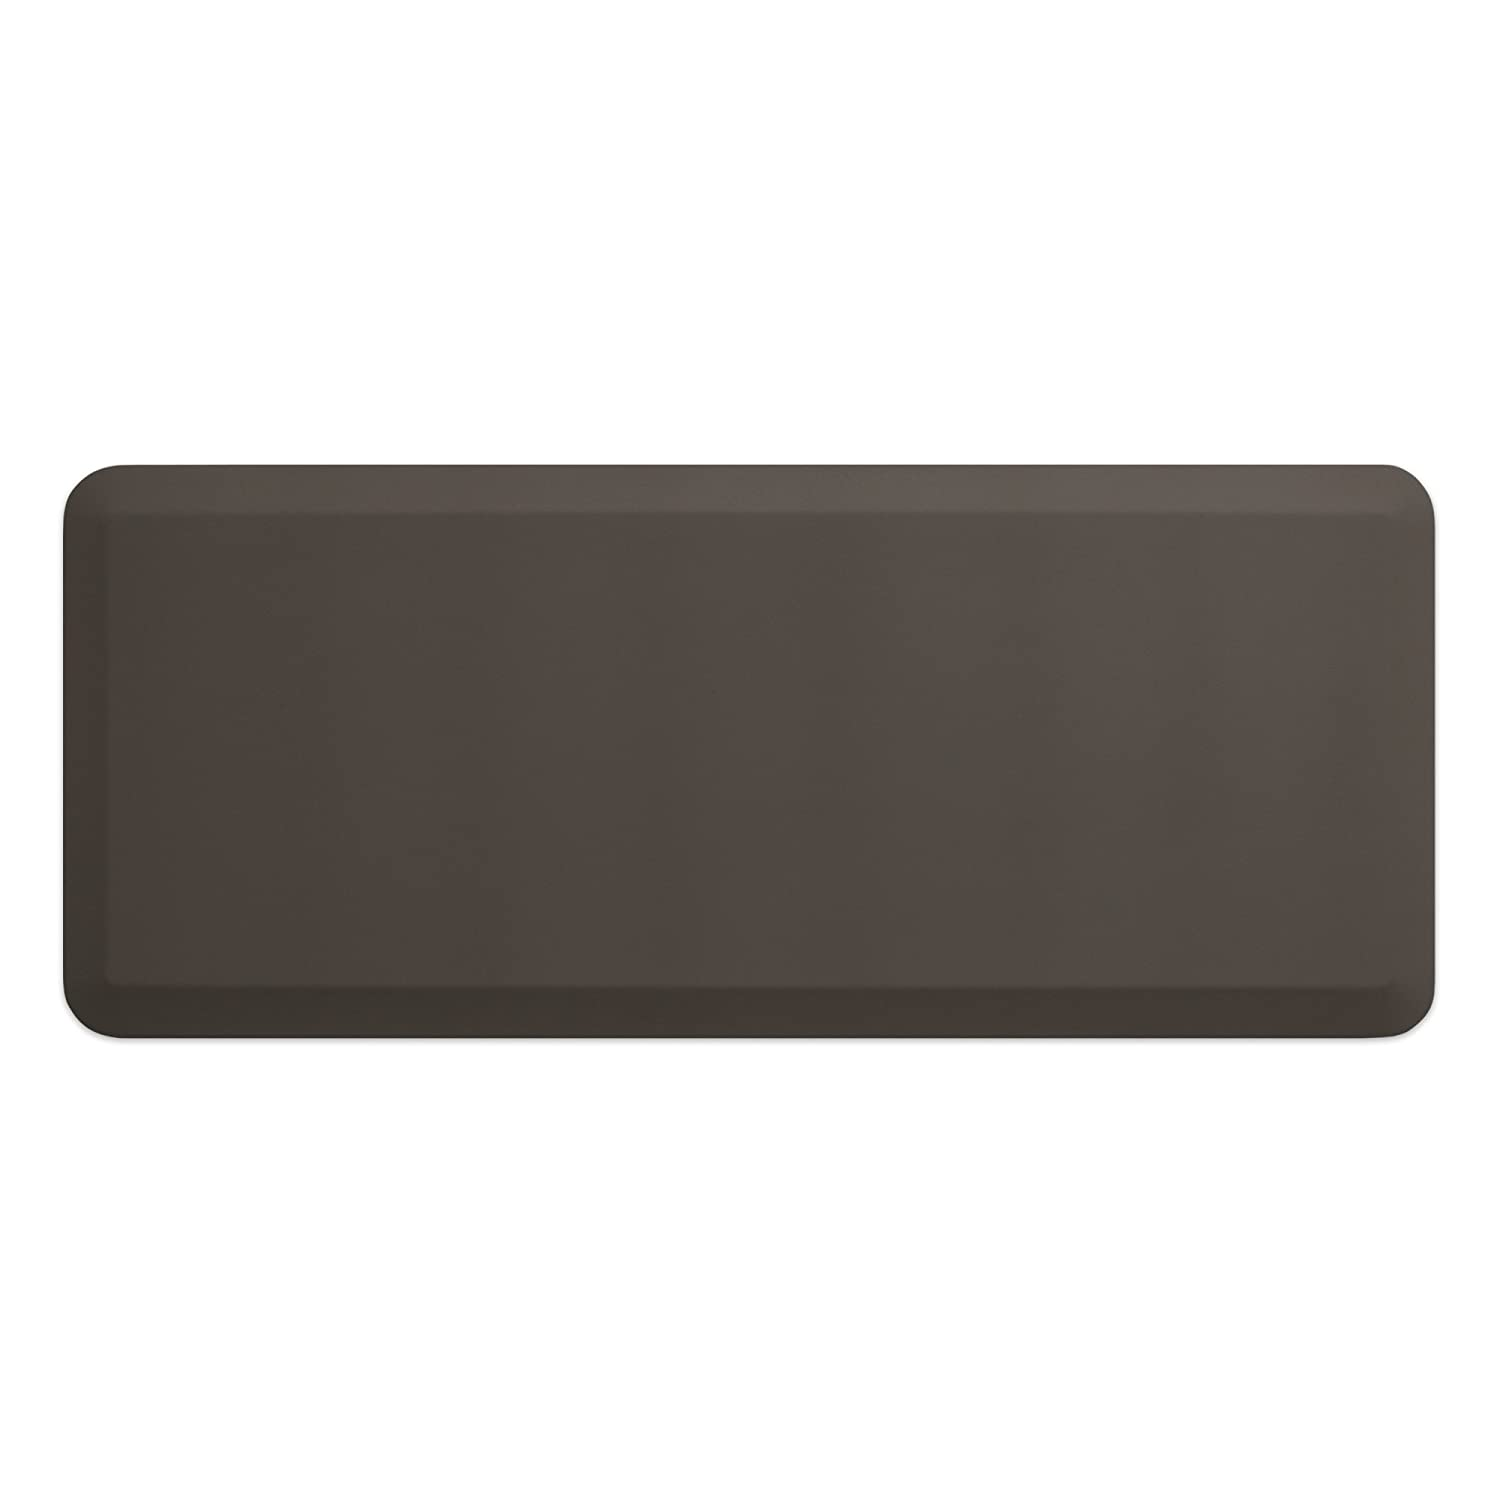 NewLife By GelPro Professional Grade Anti-Fatigue Kitchen Floor Mat, 10-Year Warranty,20-Inch by 48-Inch, Stone by NewLife by GelPro   B005J2N86W